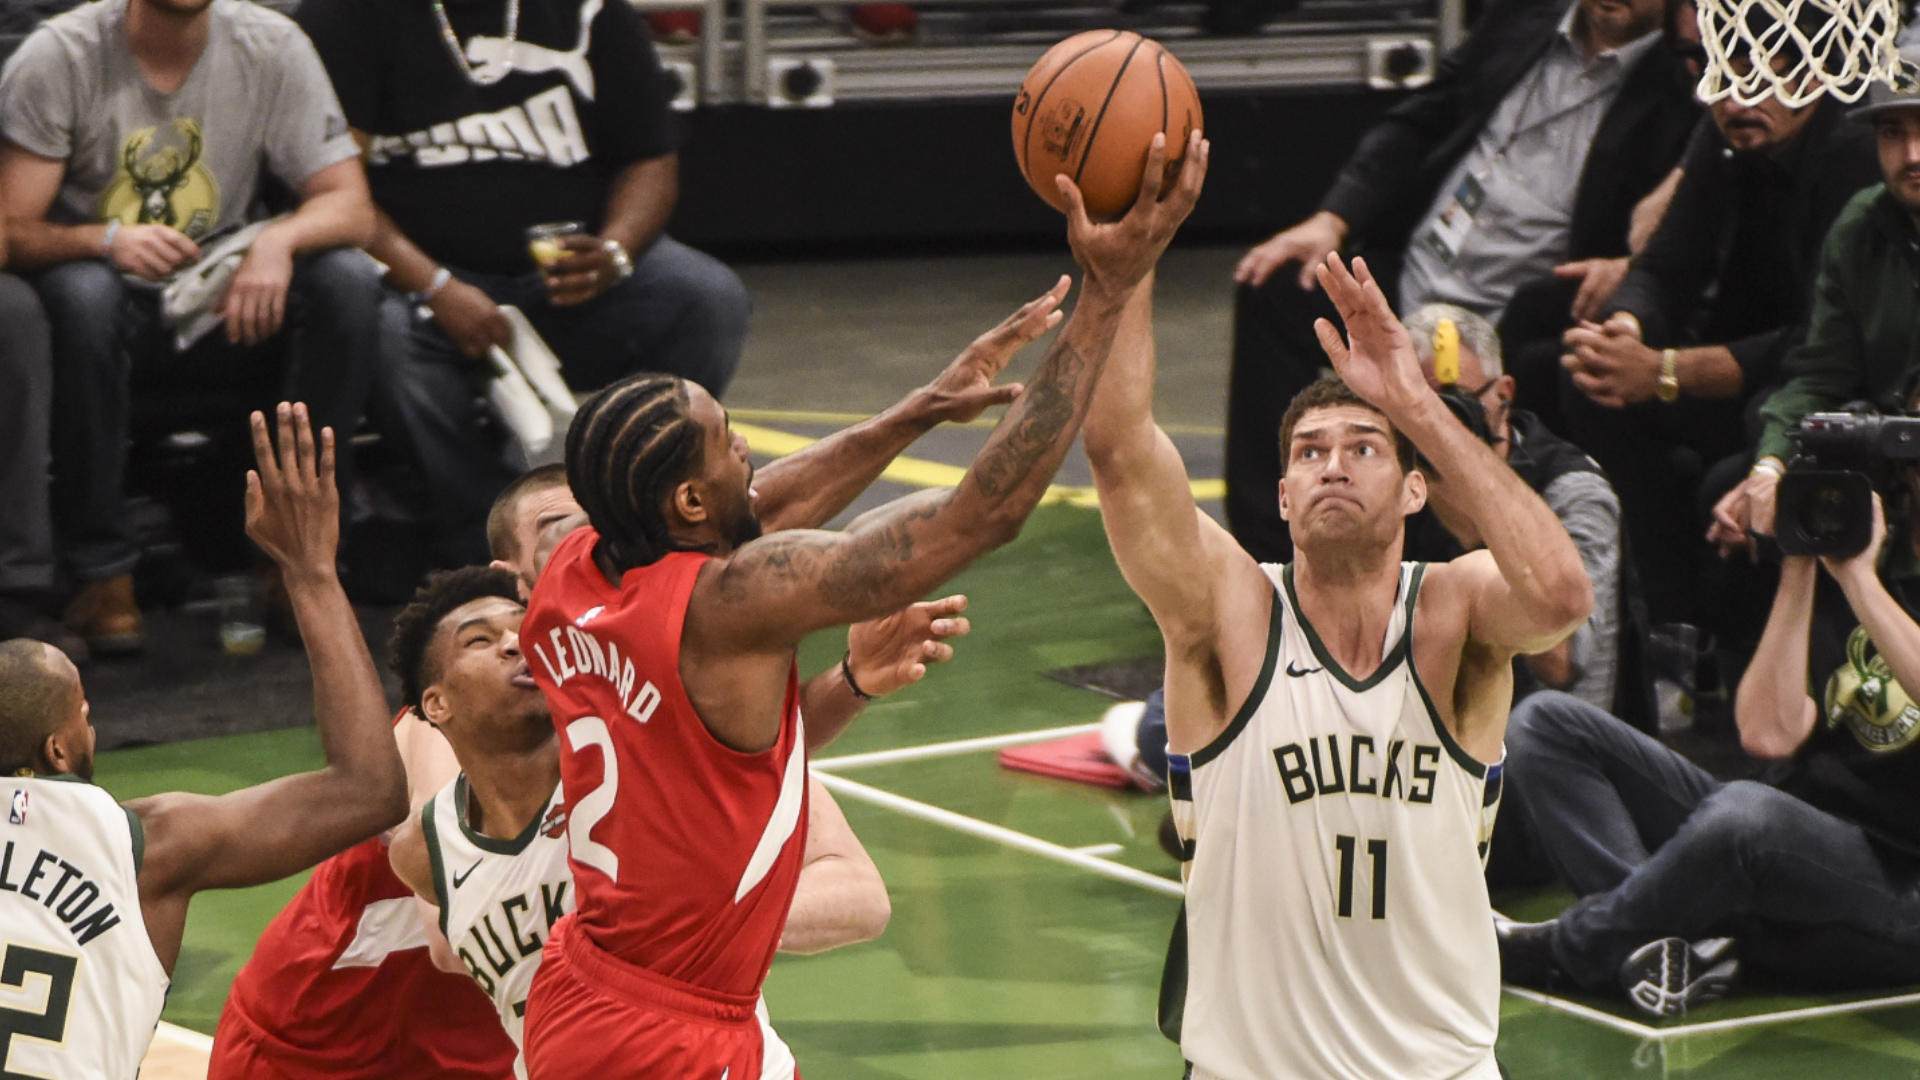 NBA Playoffs 2019: Bucks vs. Raptors odds, top picks, Game 6 predictions from advanced model on 85-61 roll